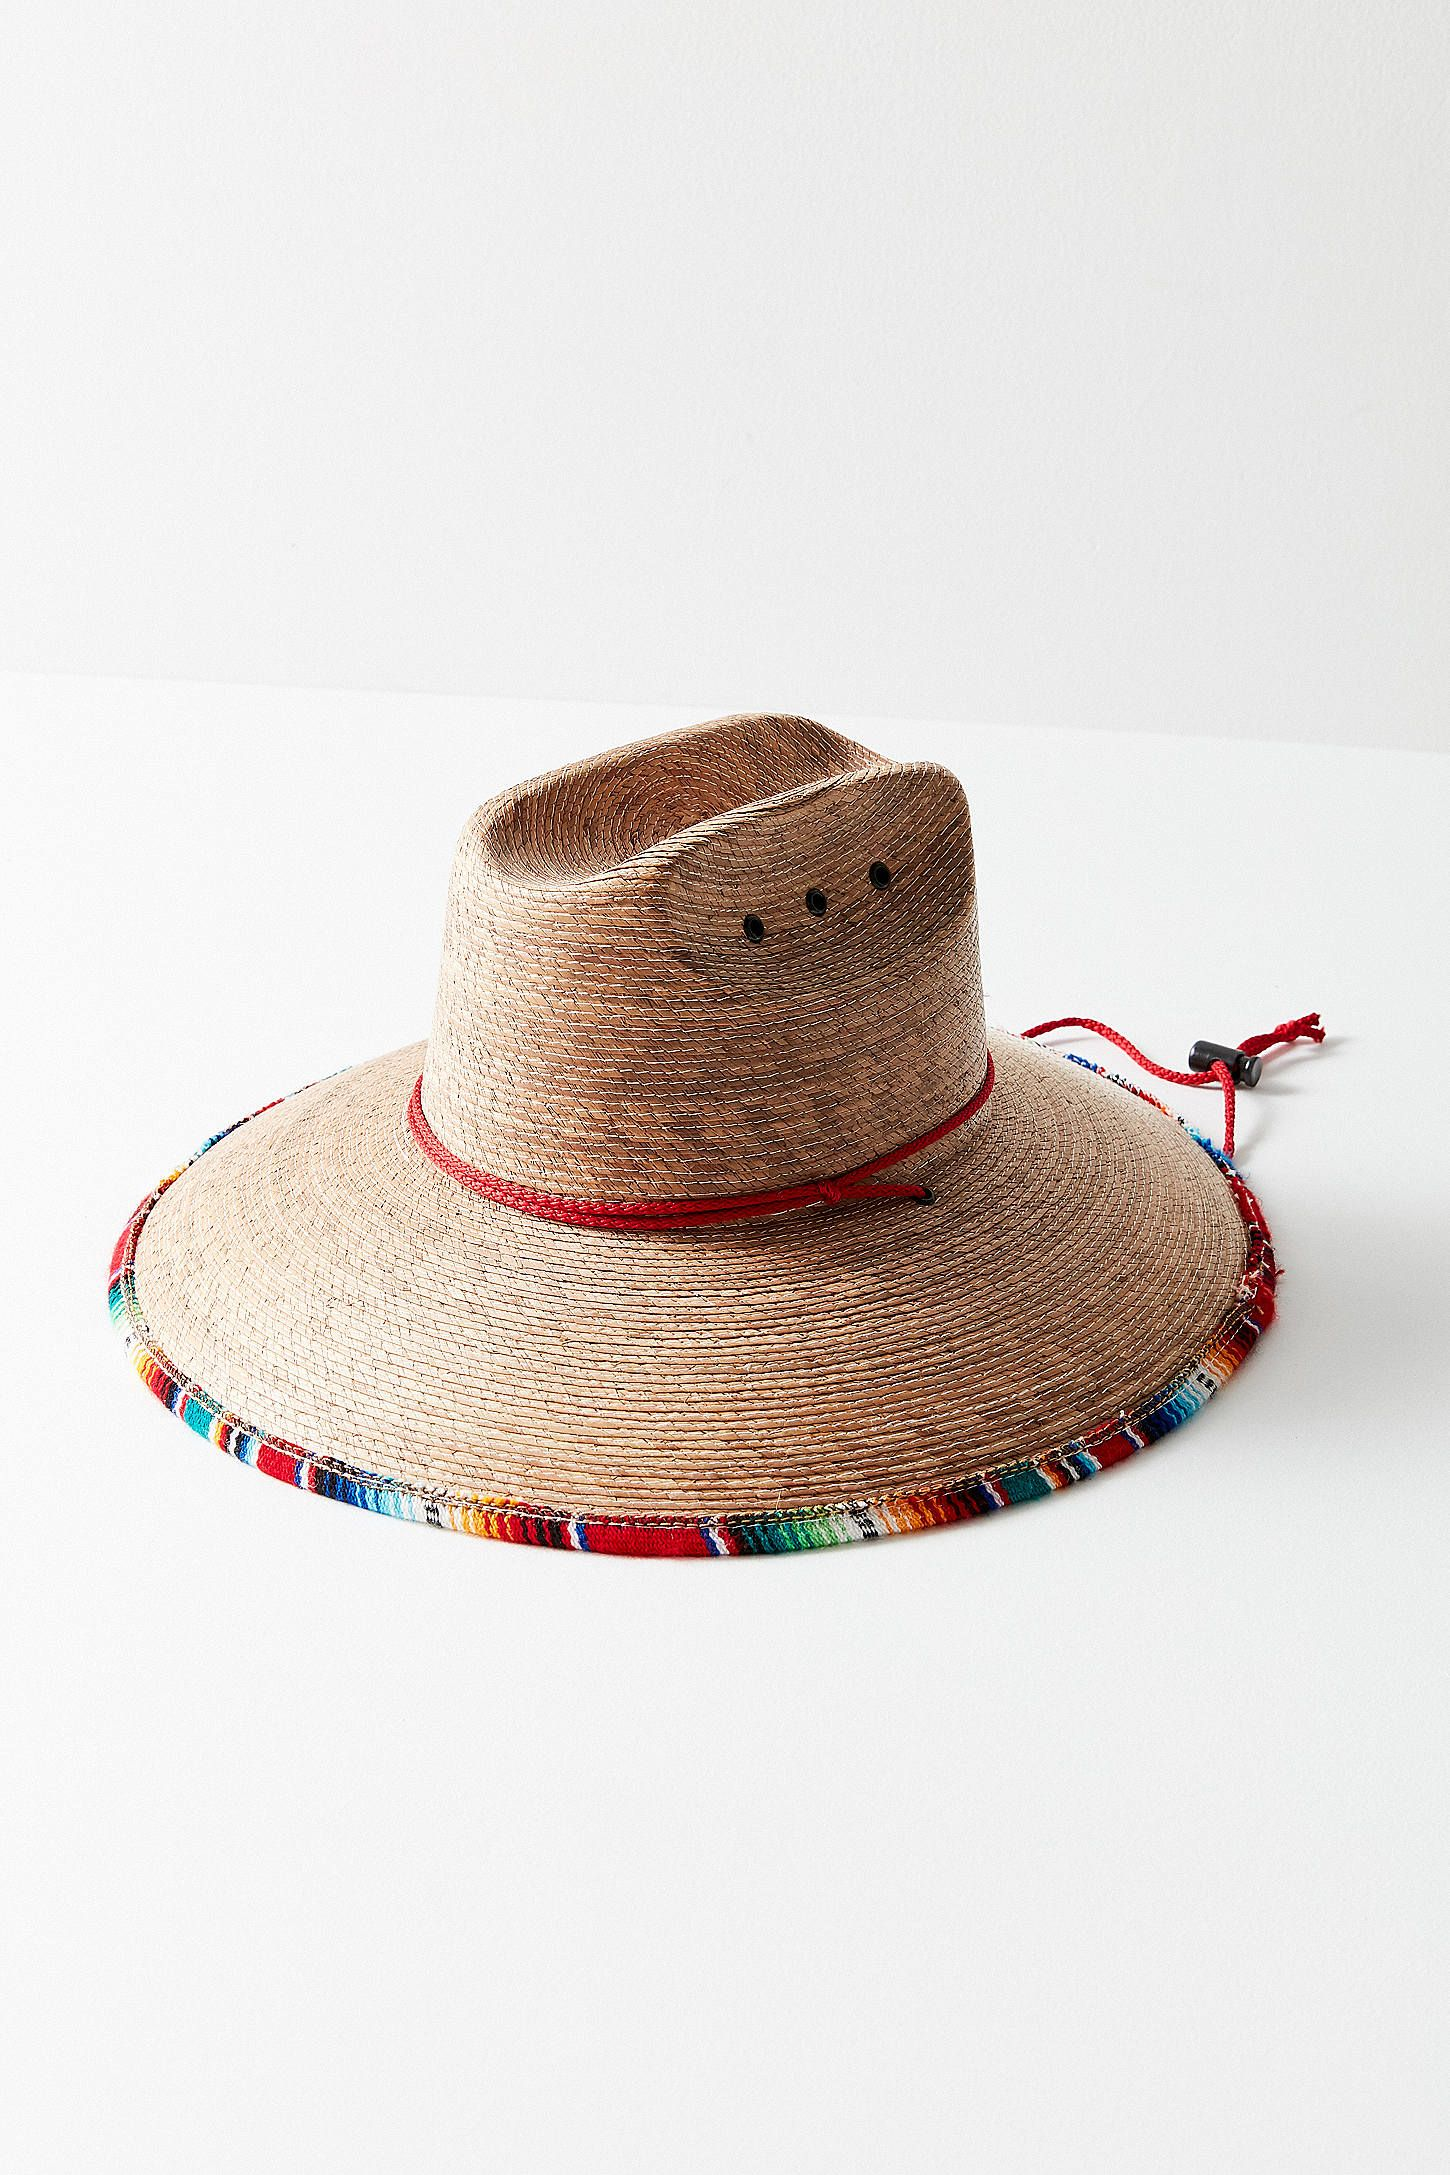 a028be72fbfd8 Shop Peter Grimm Luz Straw Lifeguard Hat at Urban Outfitters today. We  carry all the latest styles